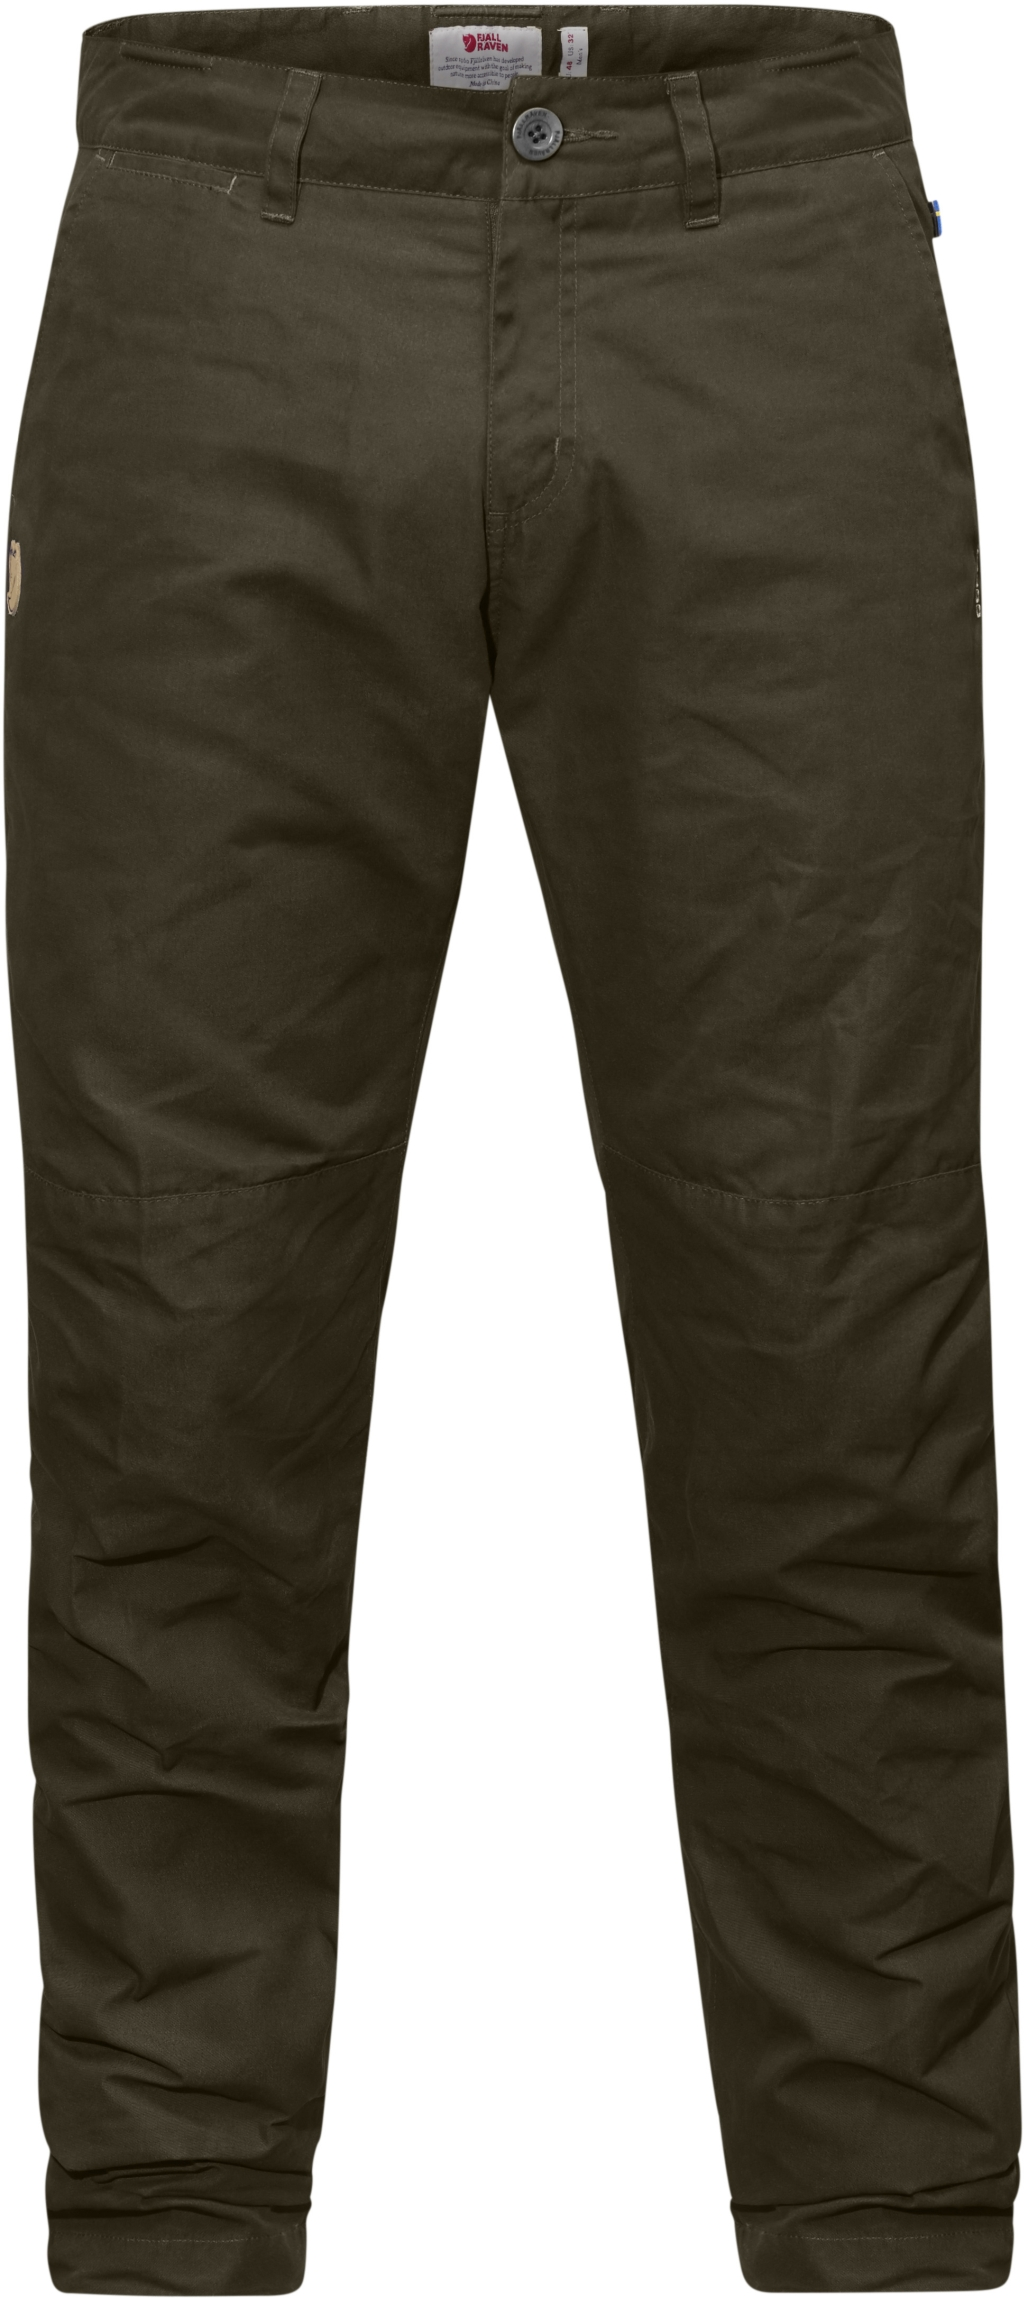 FjallRaven Sormland Tapered Winter Trousers Dark Olive-30